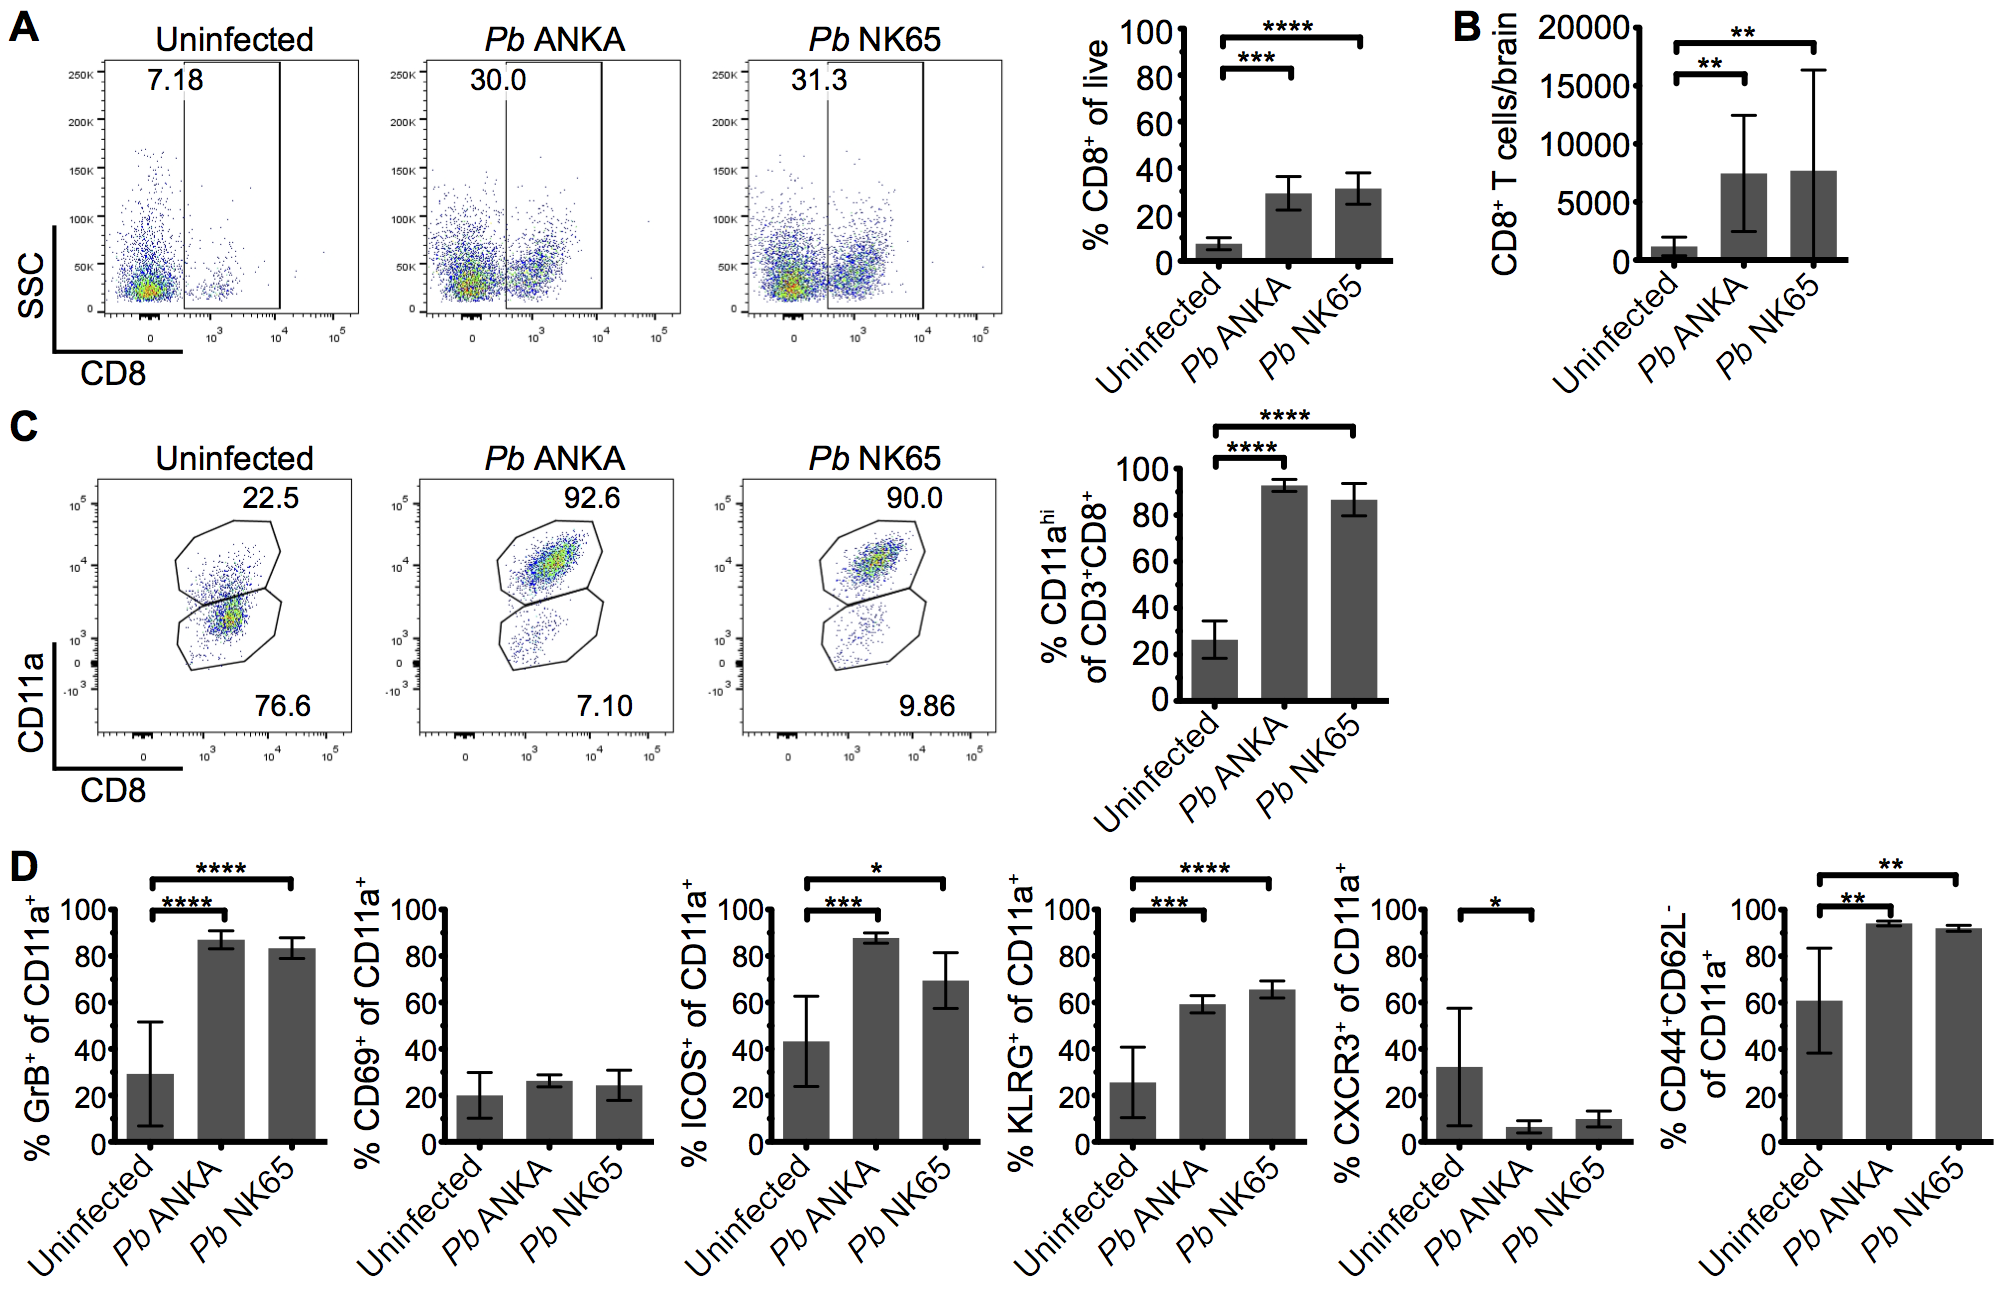 Parasite specific CD8<sup>+</sup> T cells are comparably activated within the brains of mice infected with <i>Pb</i> ANKA and <i>Pb</i> NK65 parasites.